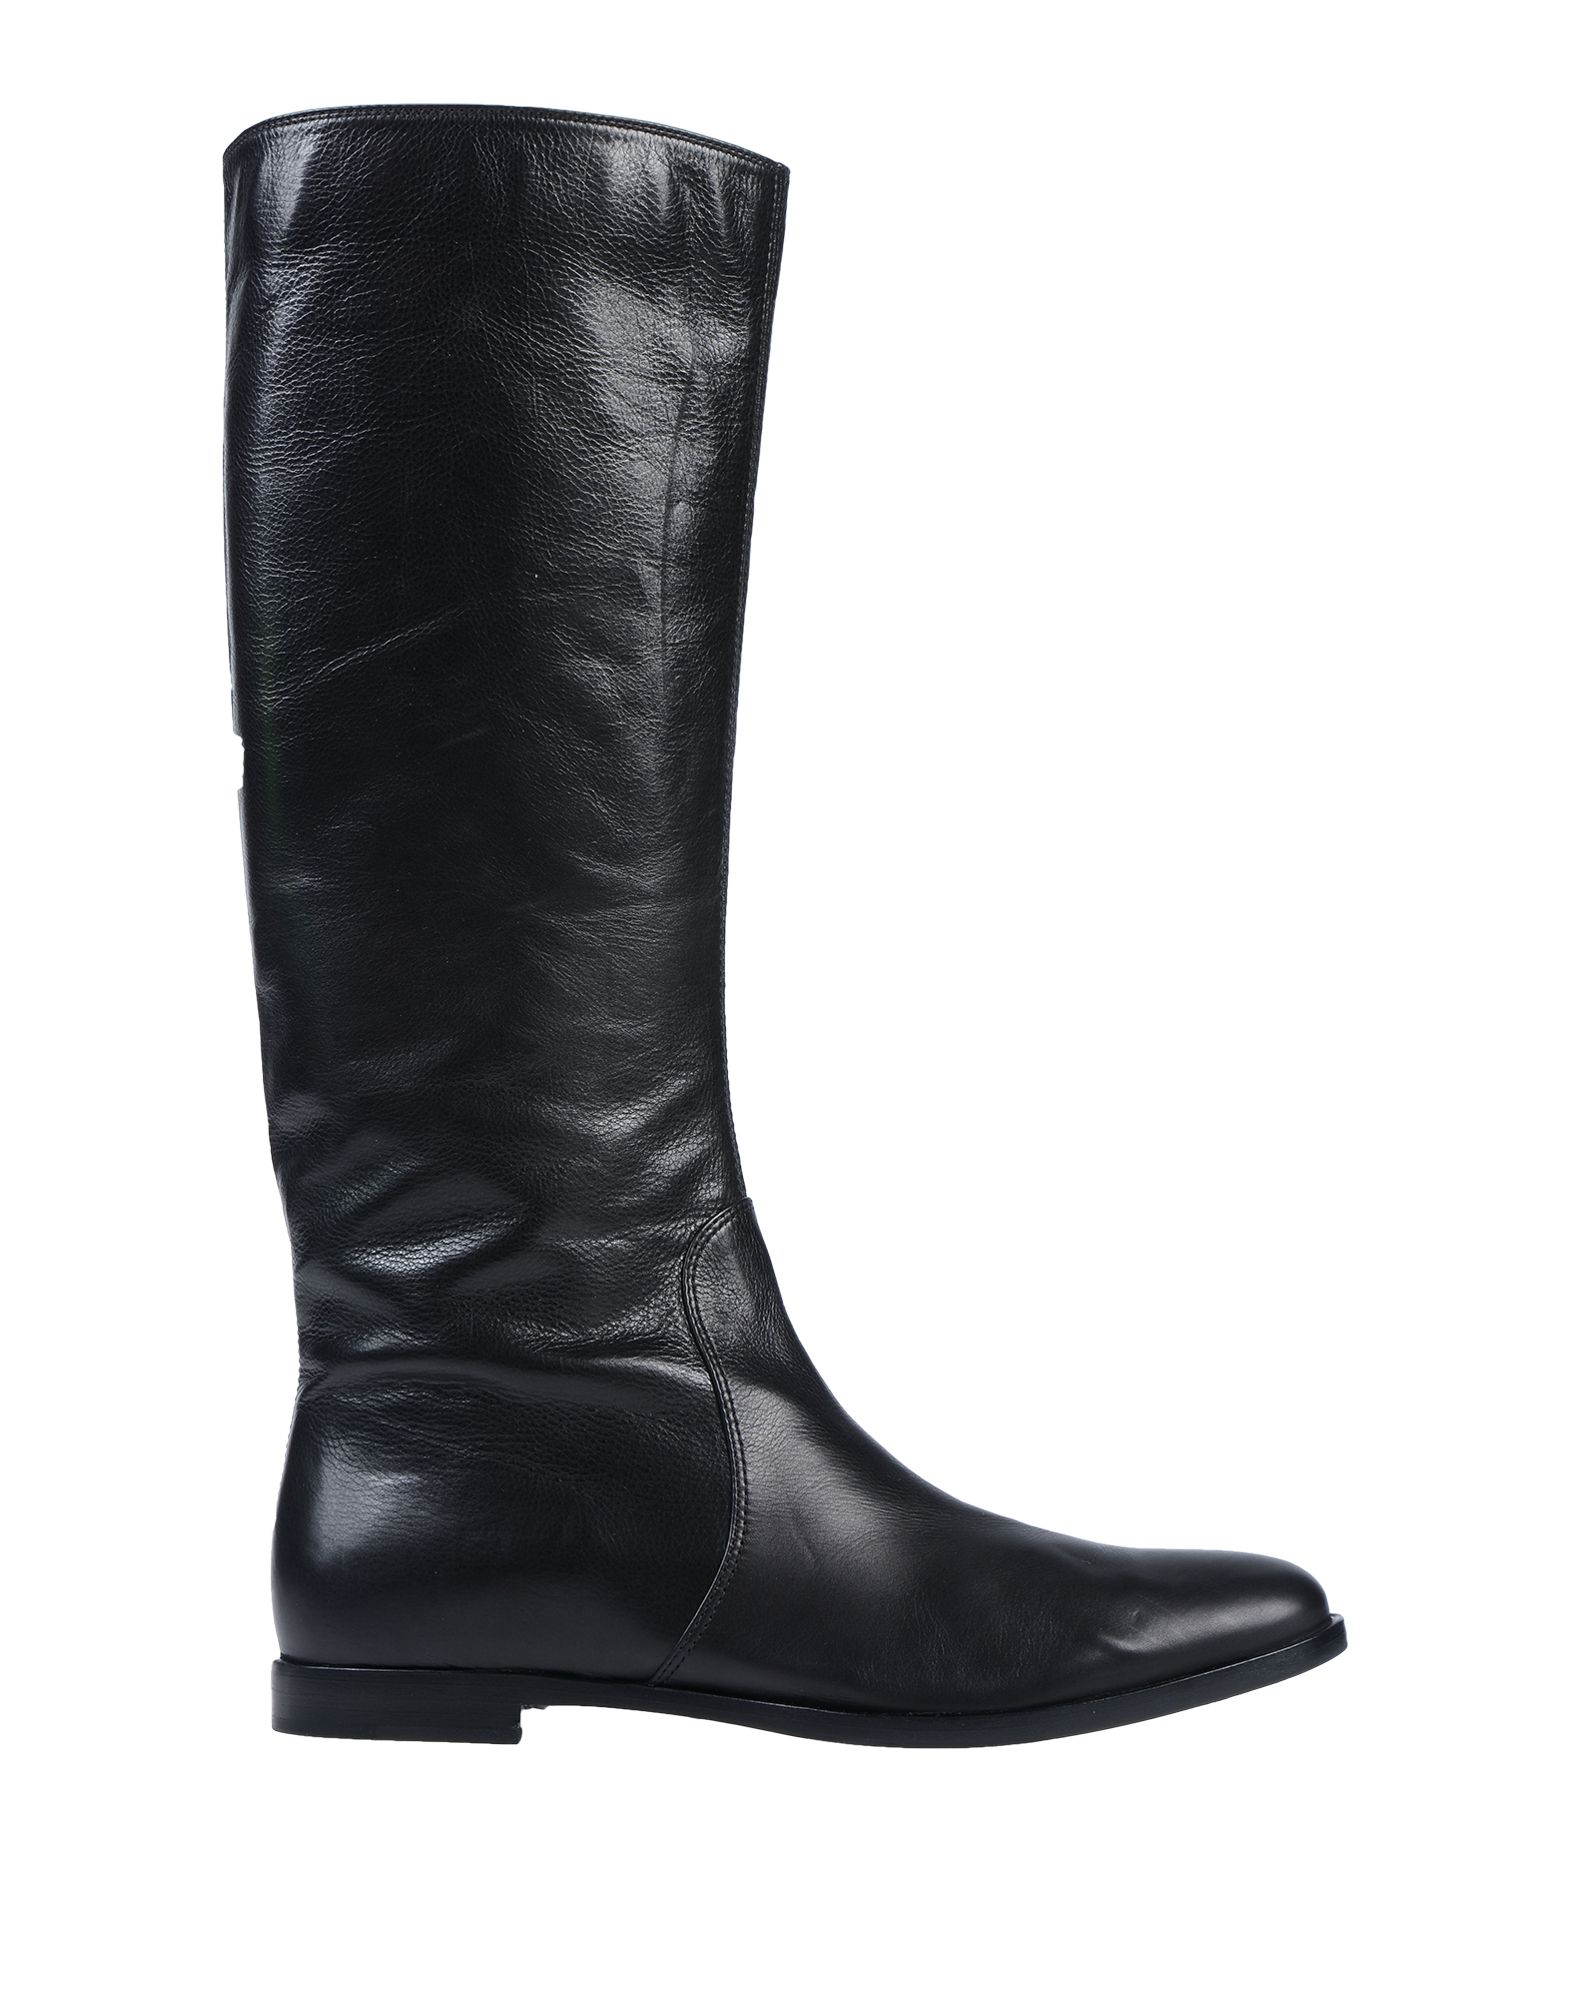 Sergio Rossi Boots Boots - Women Sergio Rossi Boots Boots online on  United Kingdom - 11565392XV bb08f5